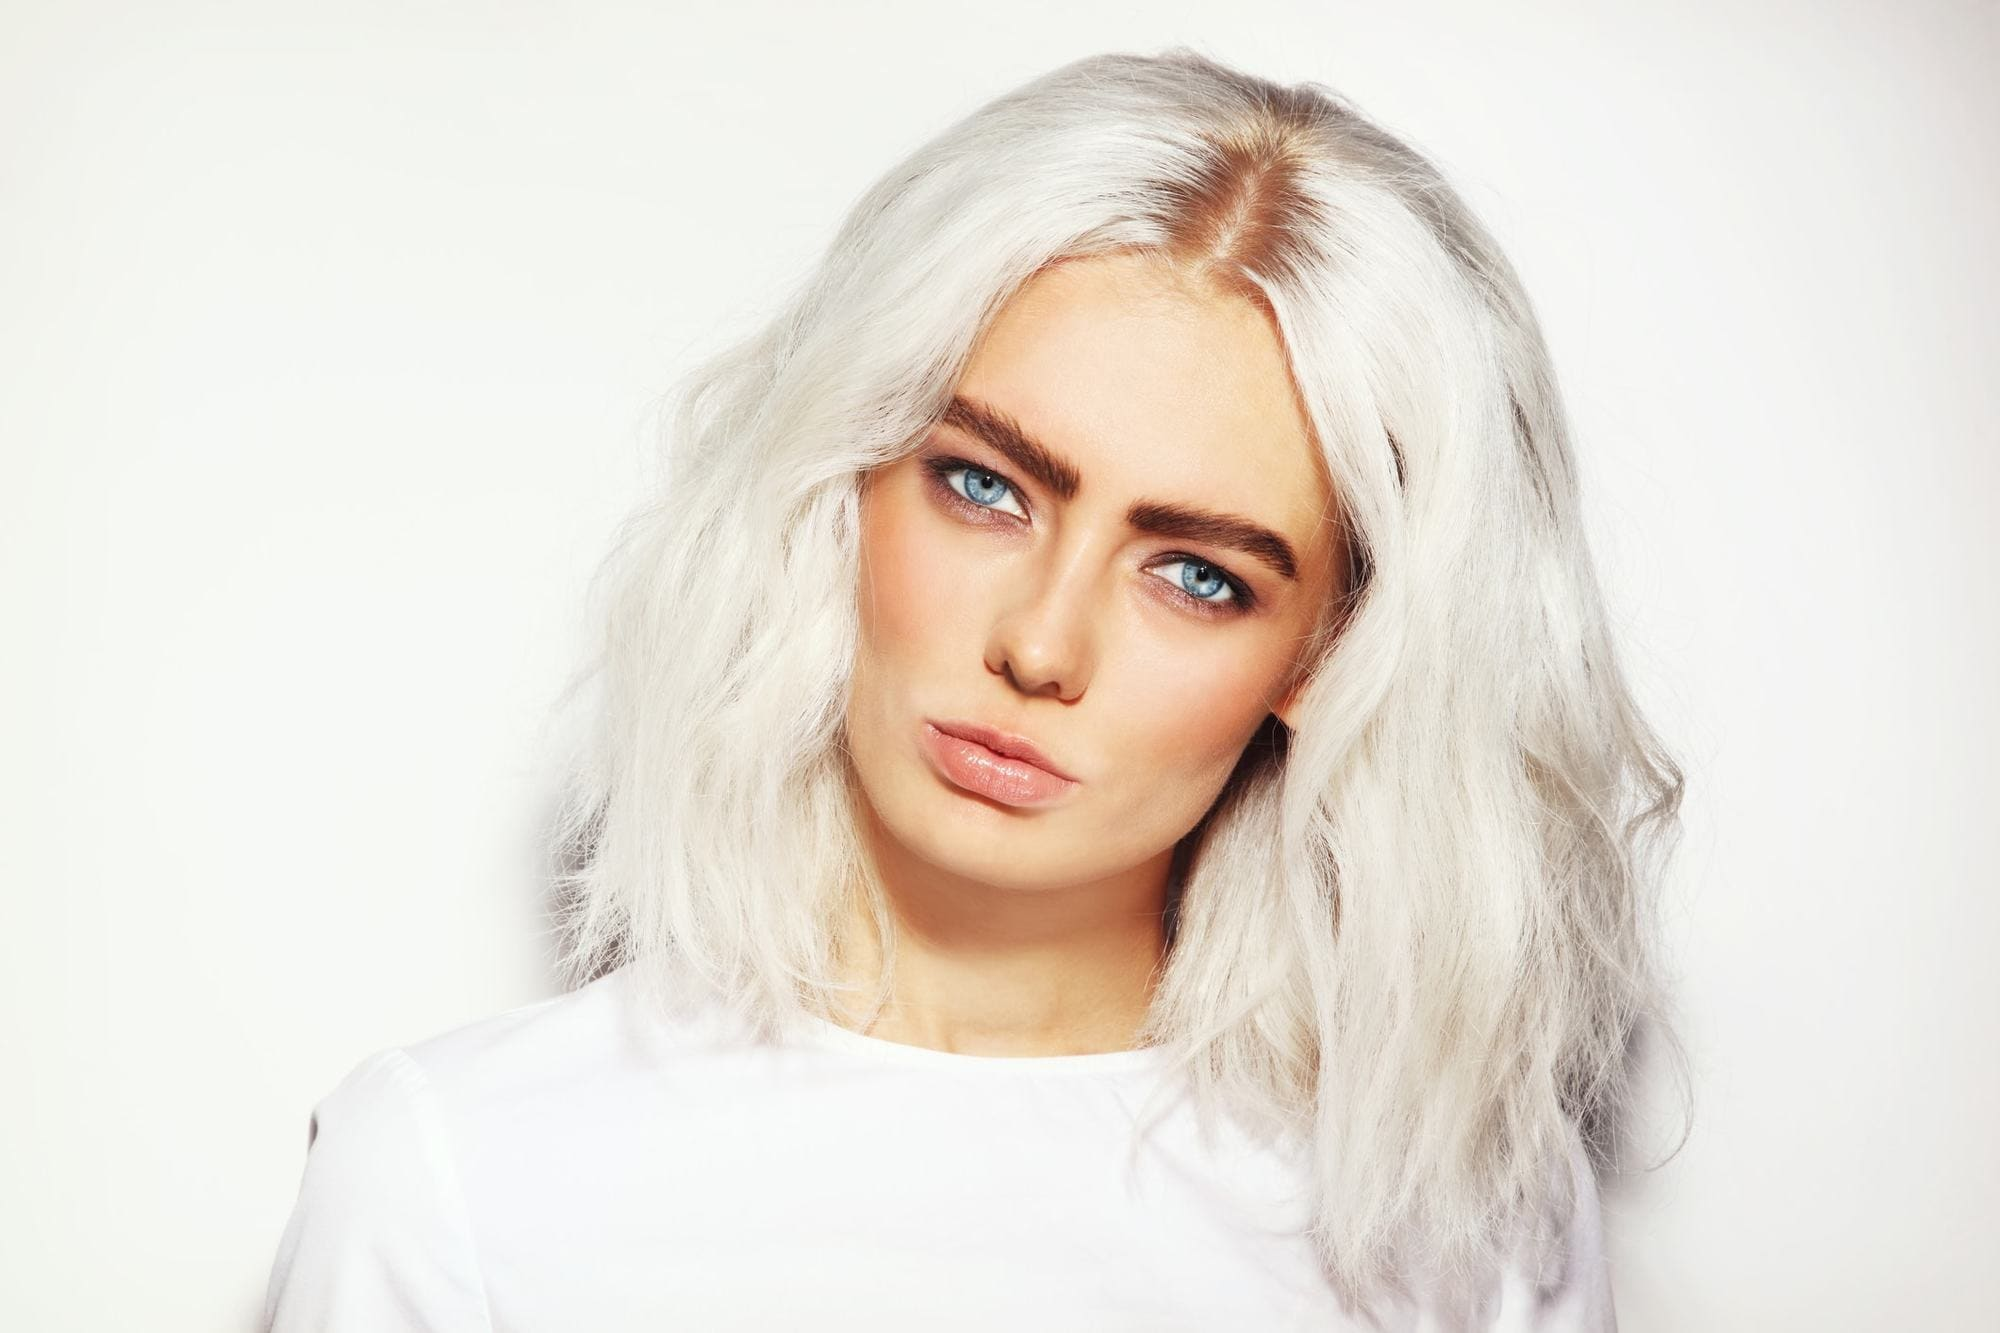 metallic hair bleach white blonde